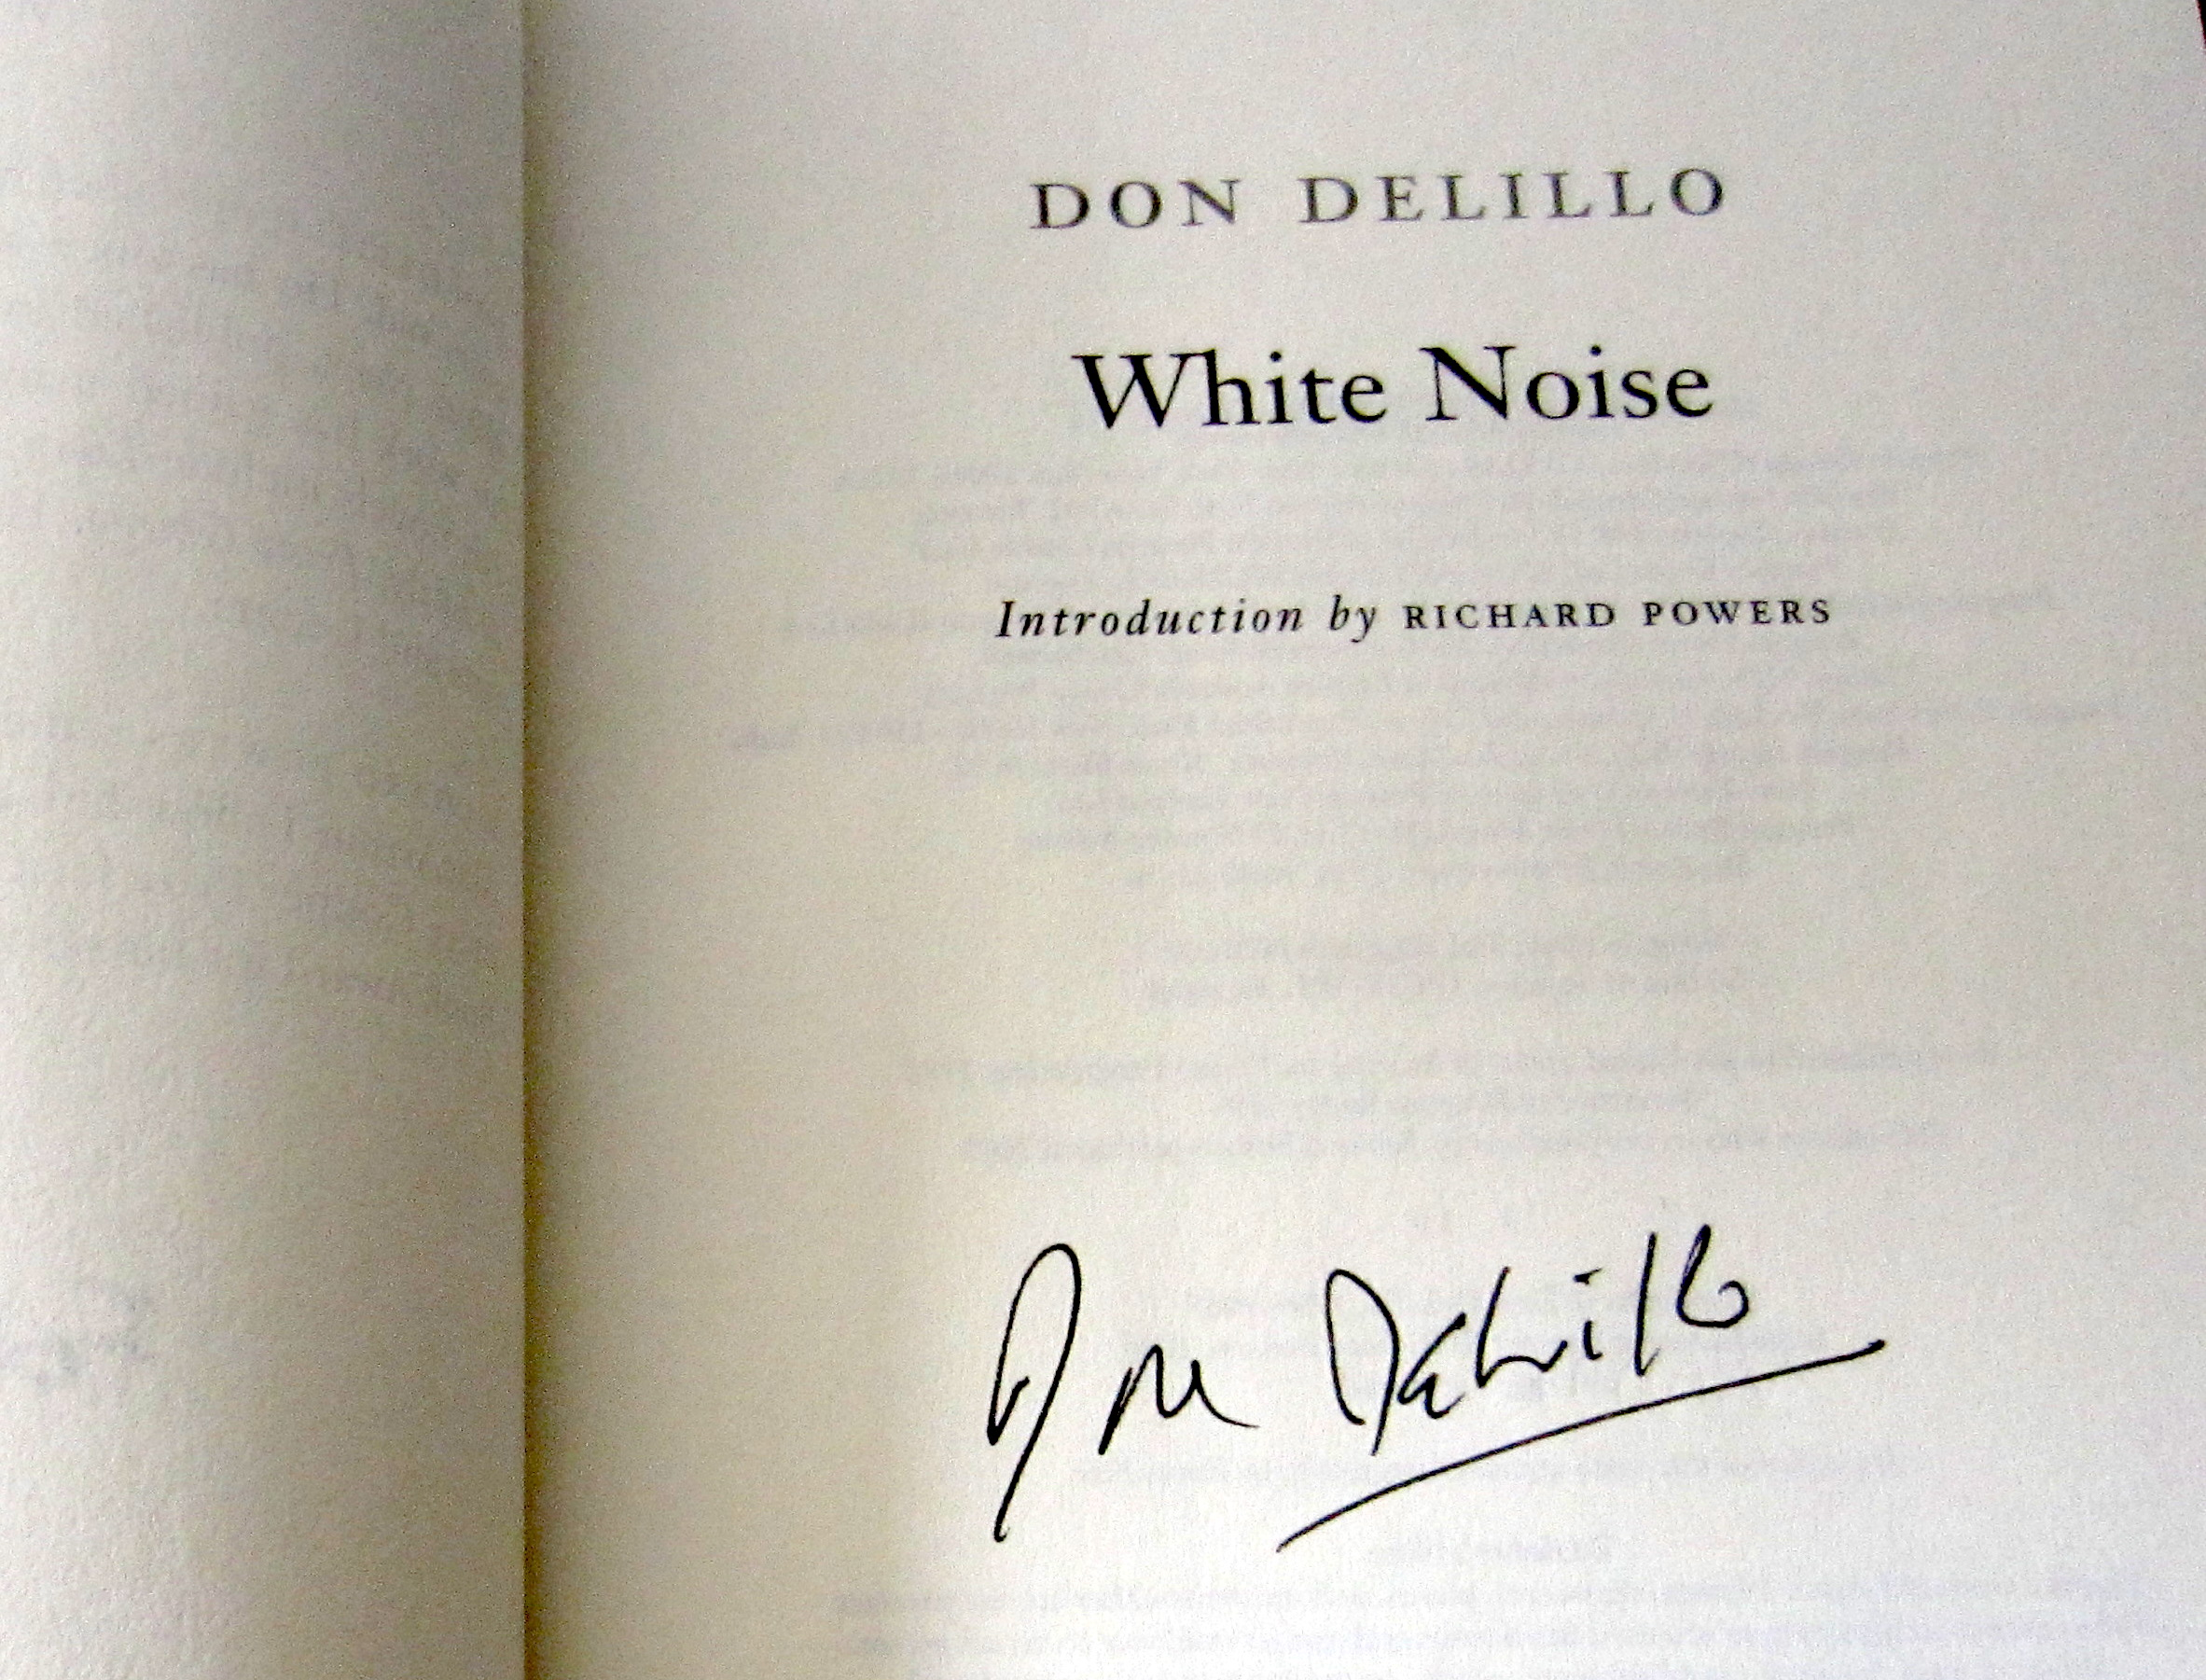 white noise don delillo essay Jay murray siskind is don delillo's only recurring character, having first appeared in delillo's pseudonymous amazons and later as a kind of mephistopheles character in white noise.